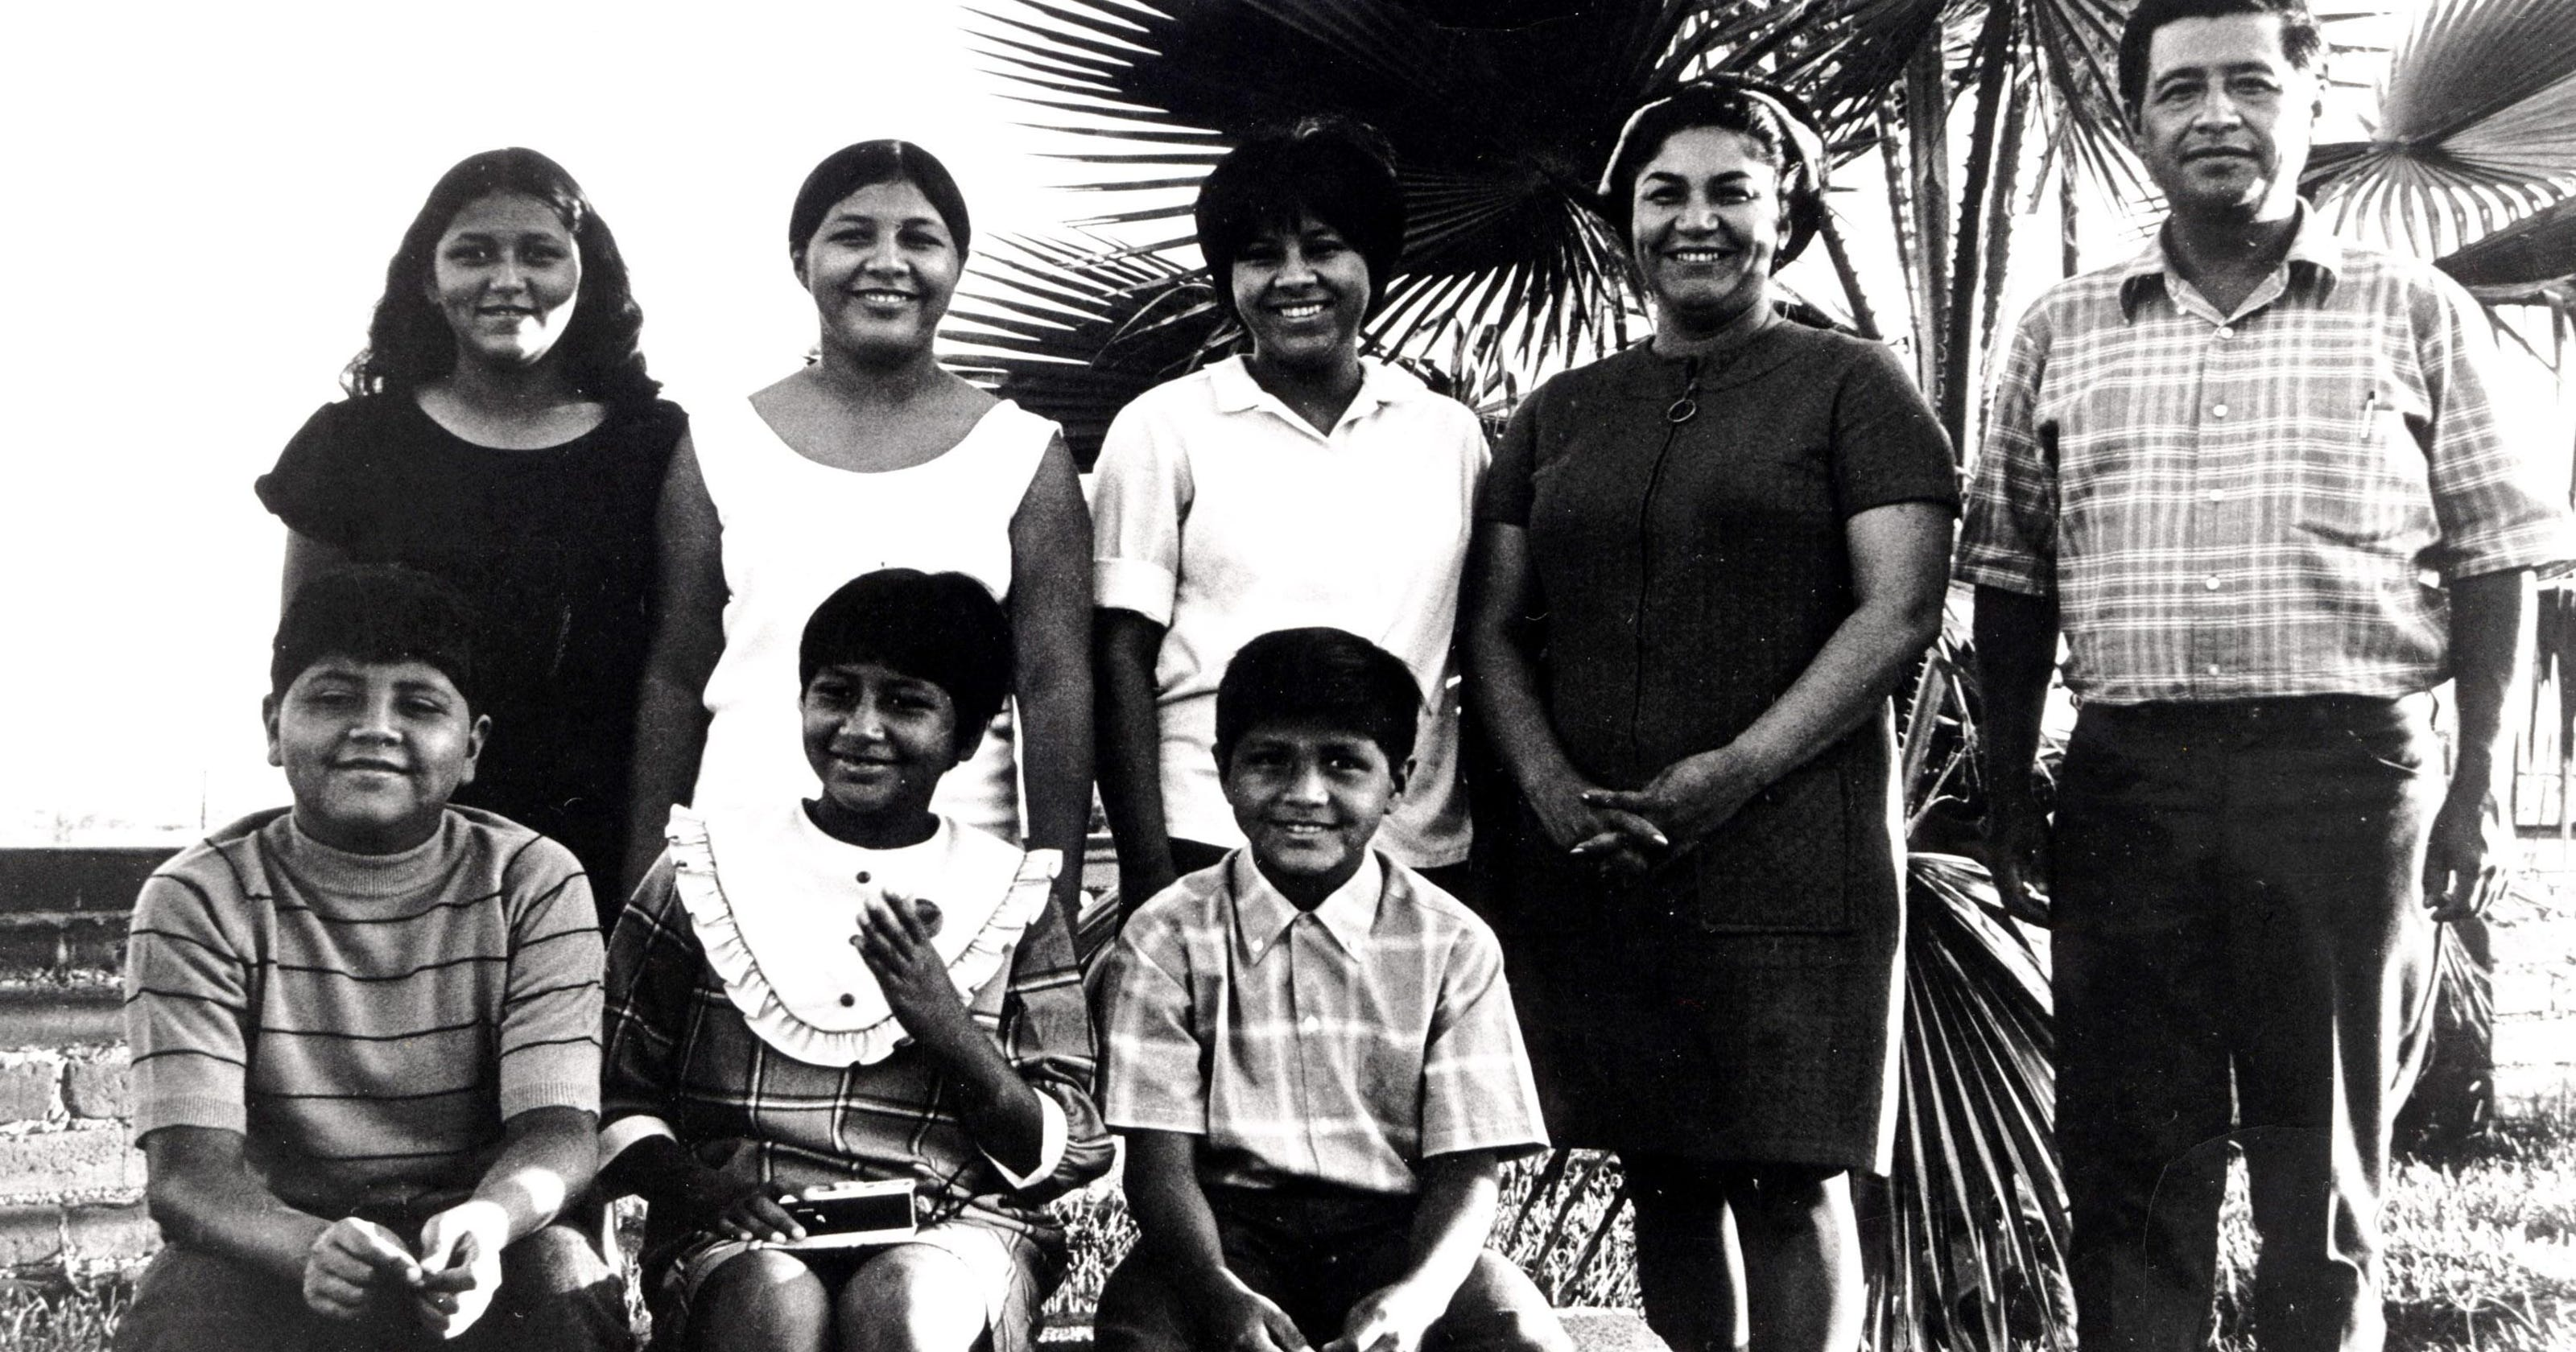 Helen Fabela Chavez, wife of Cesar Chavez, dead at 88